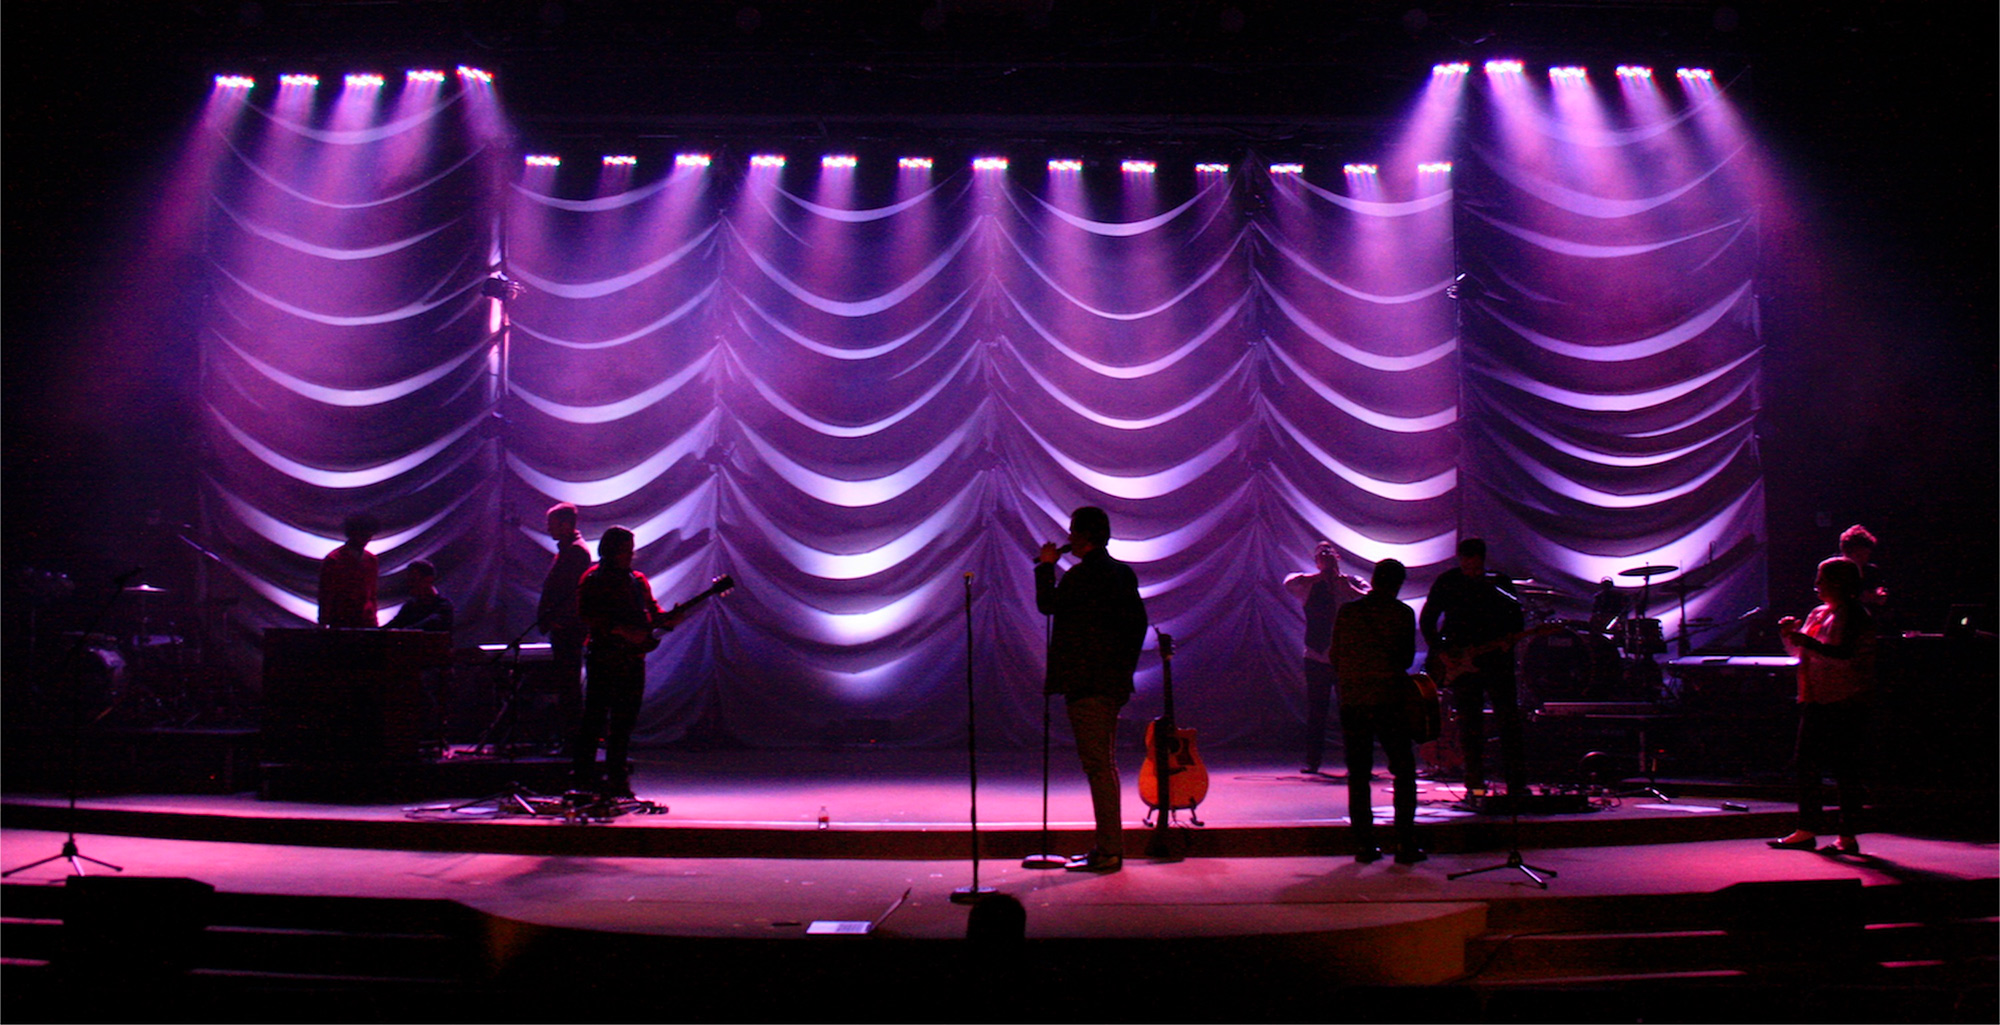 rippling background church stage design ideas - Church Stage Design Ideas